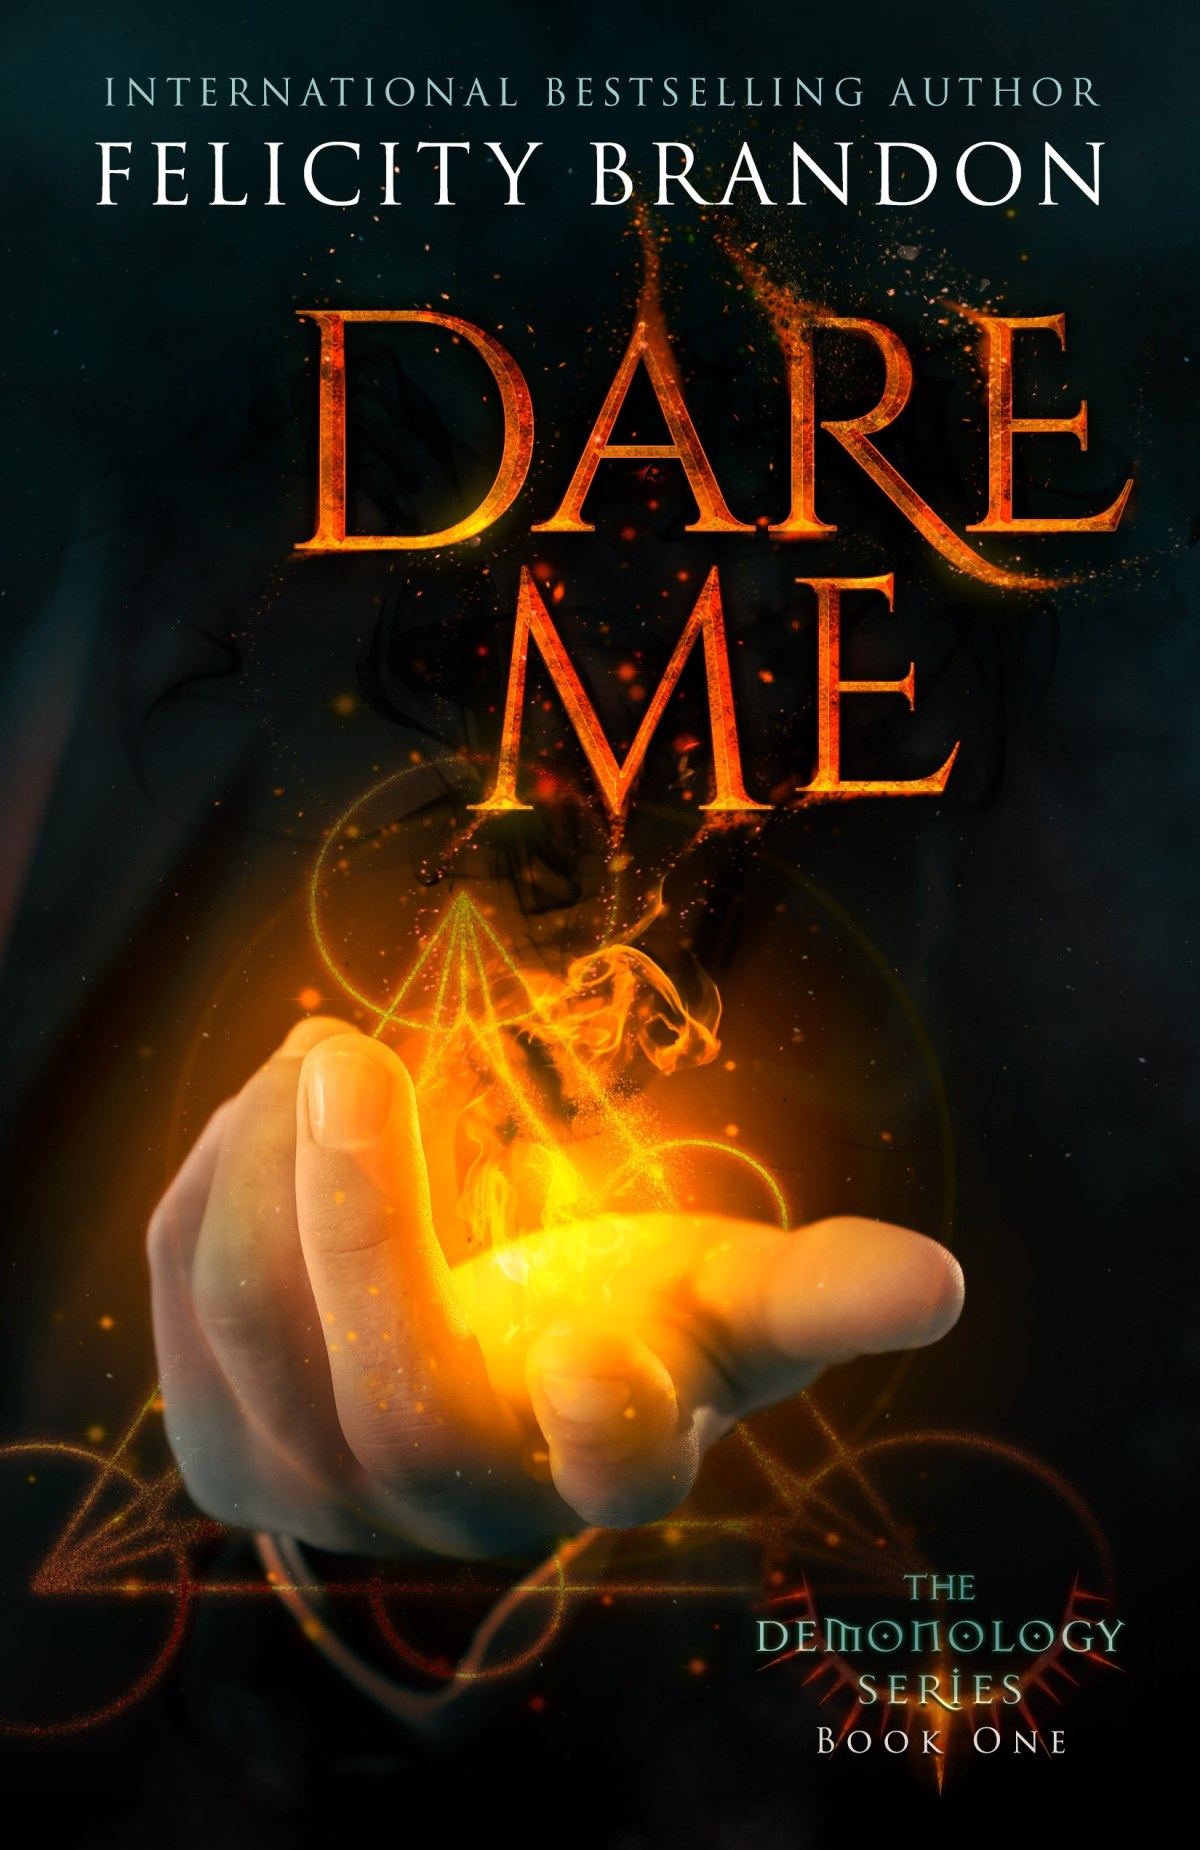 I Dare You to meet Raif…